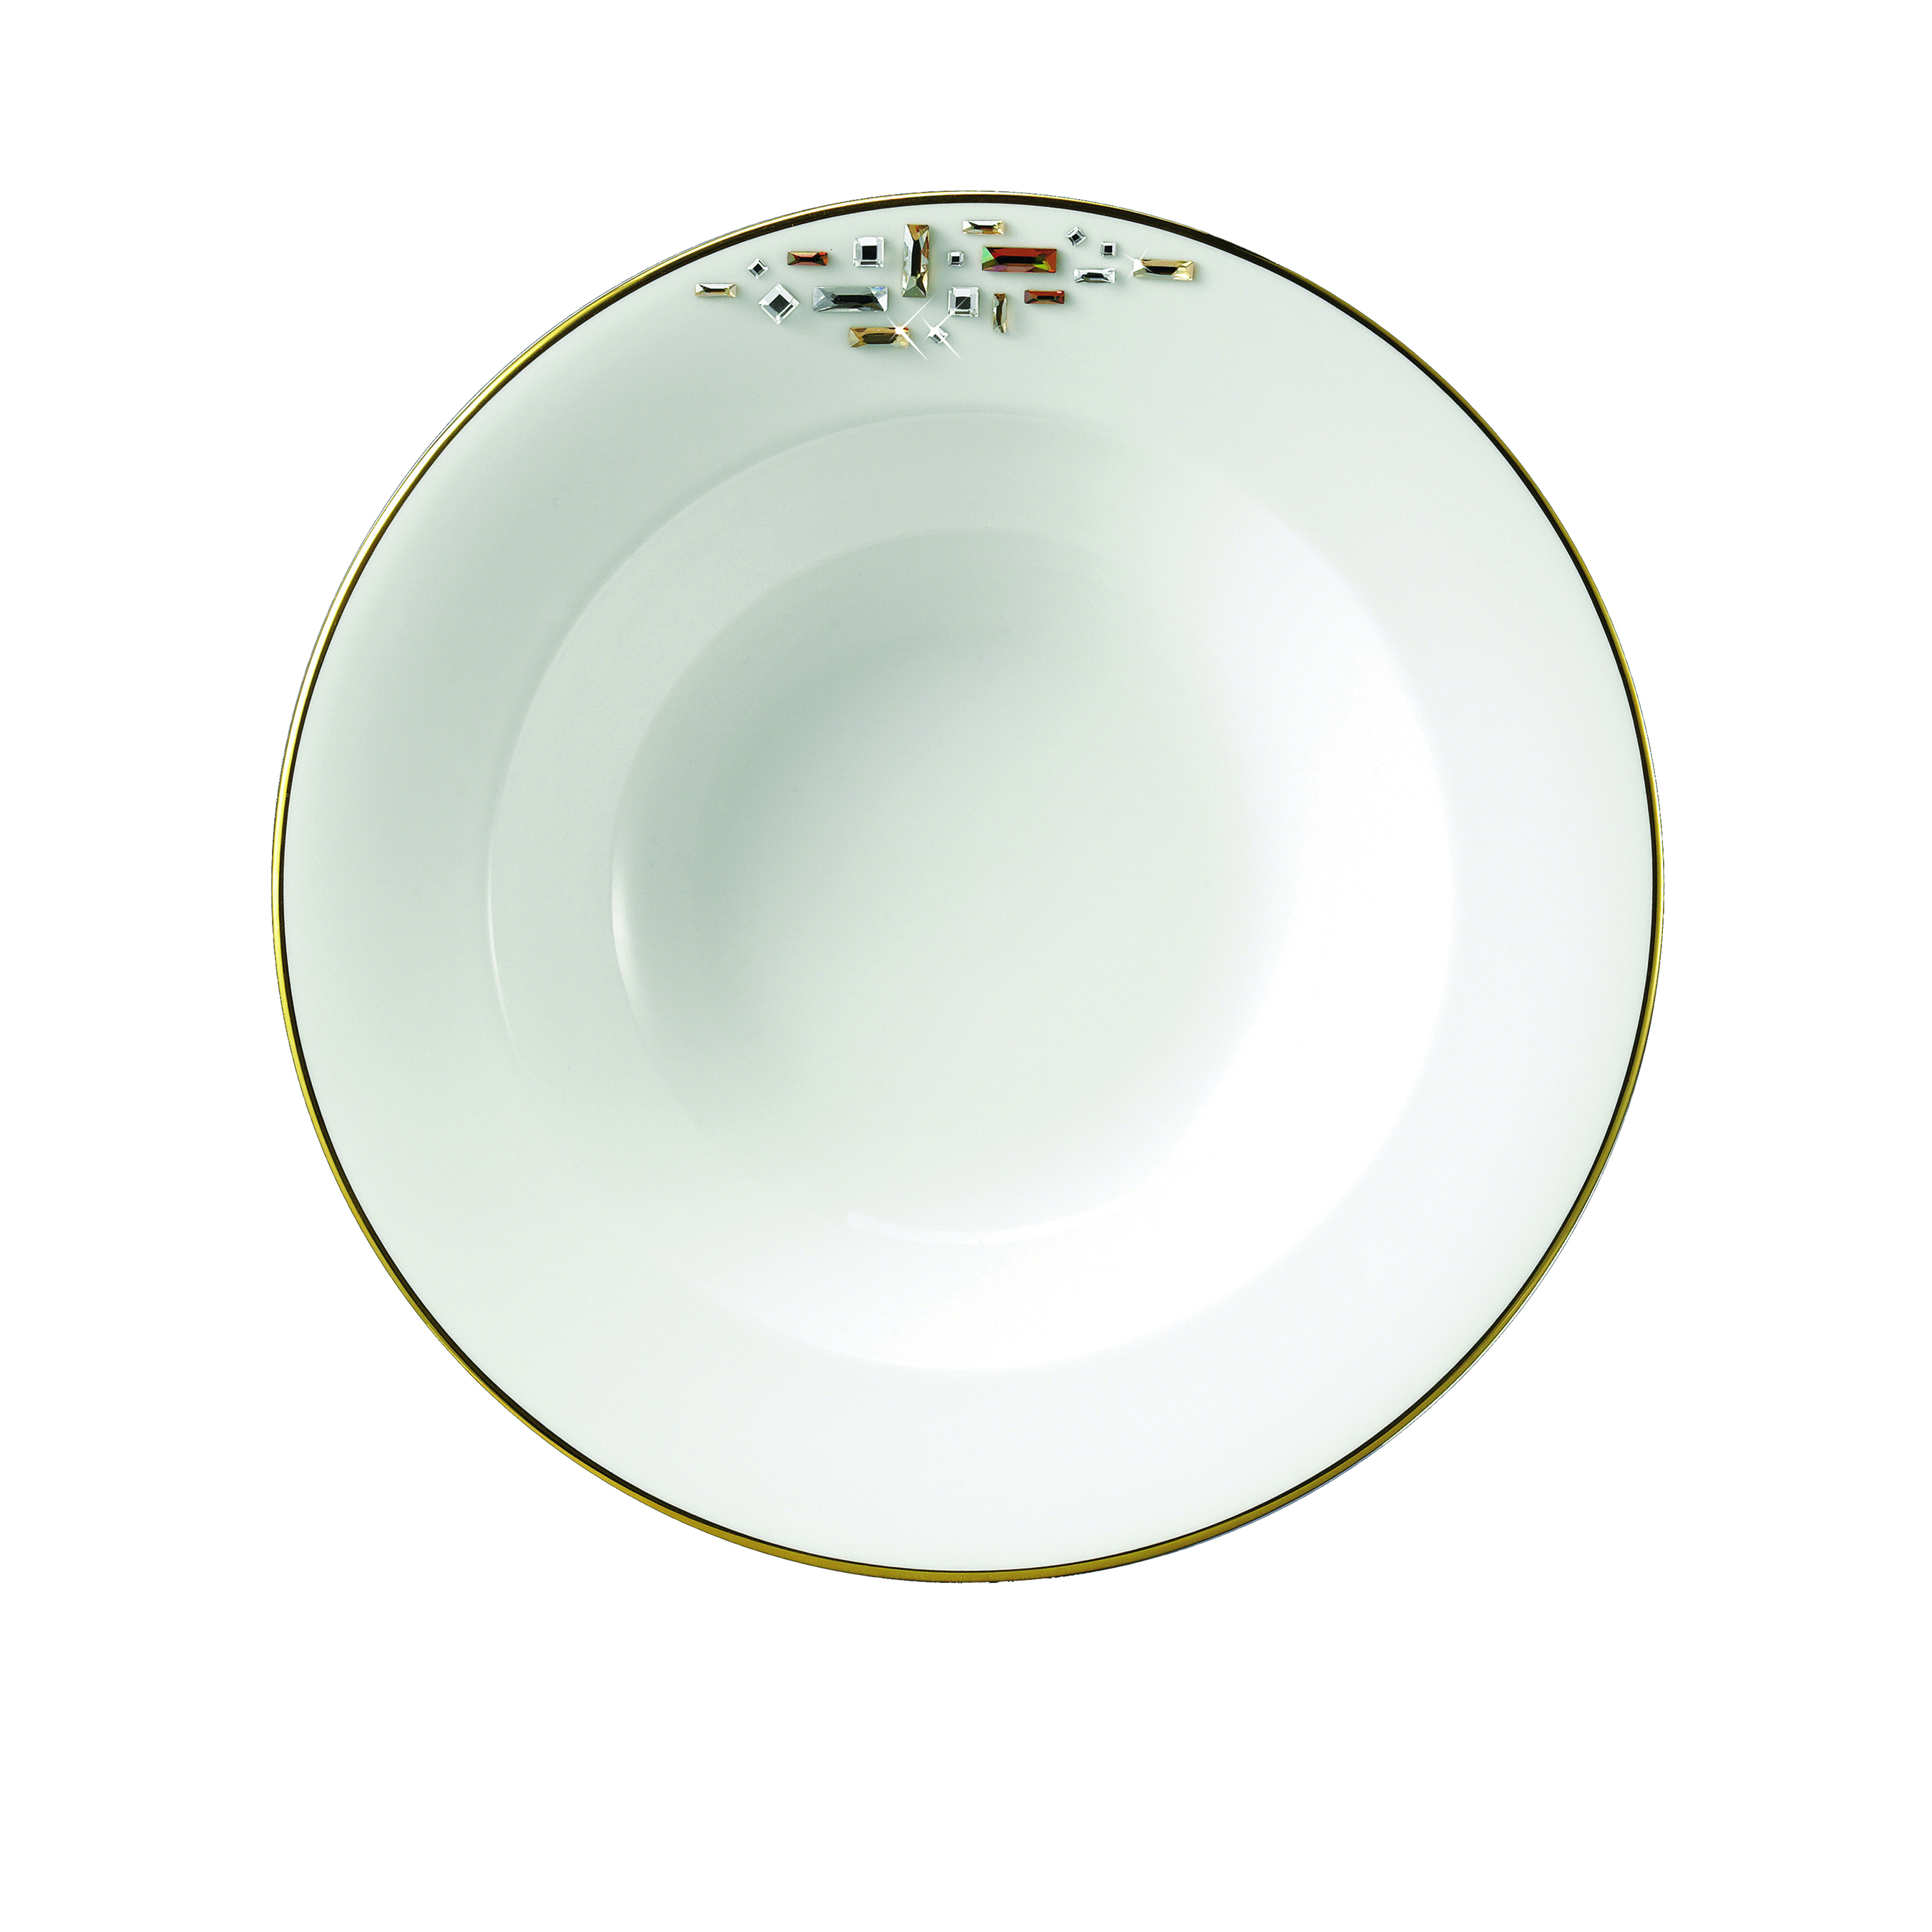 Prouna diana gold dinnerware gracious style for Diana dishes